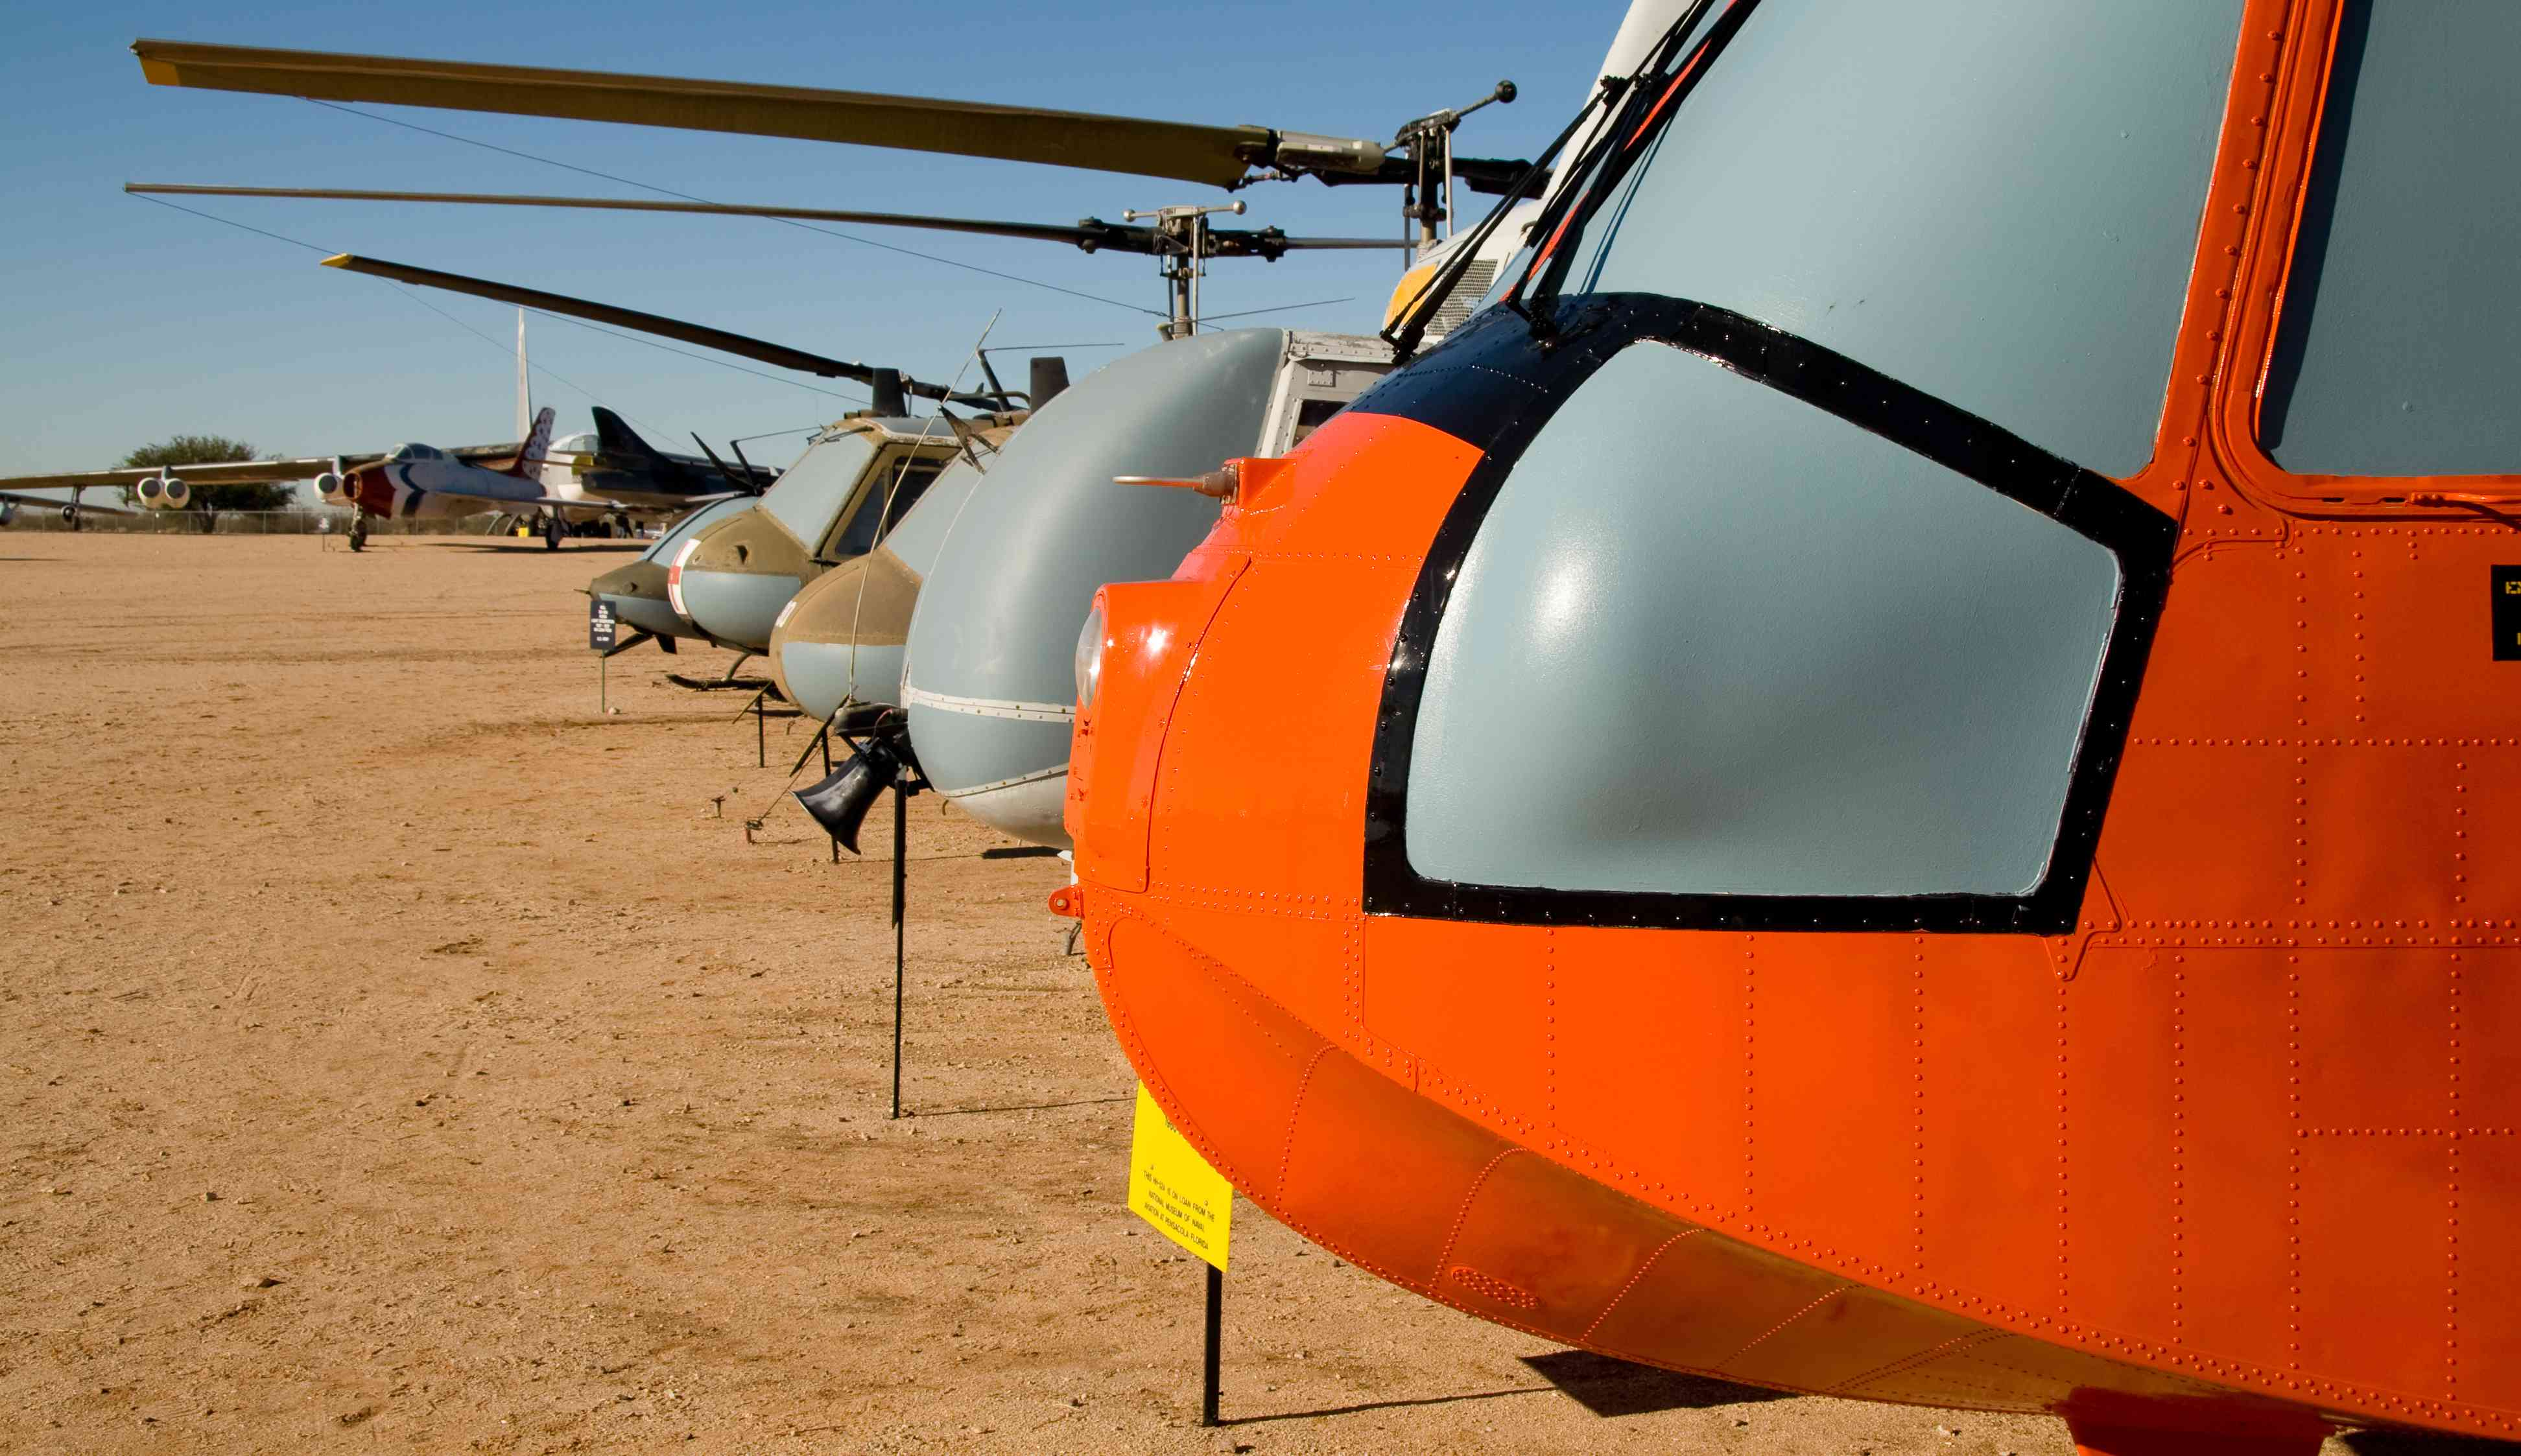 Helicopters at the PIMA Air and Space Museum